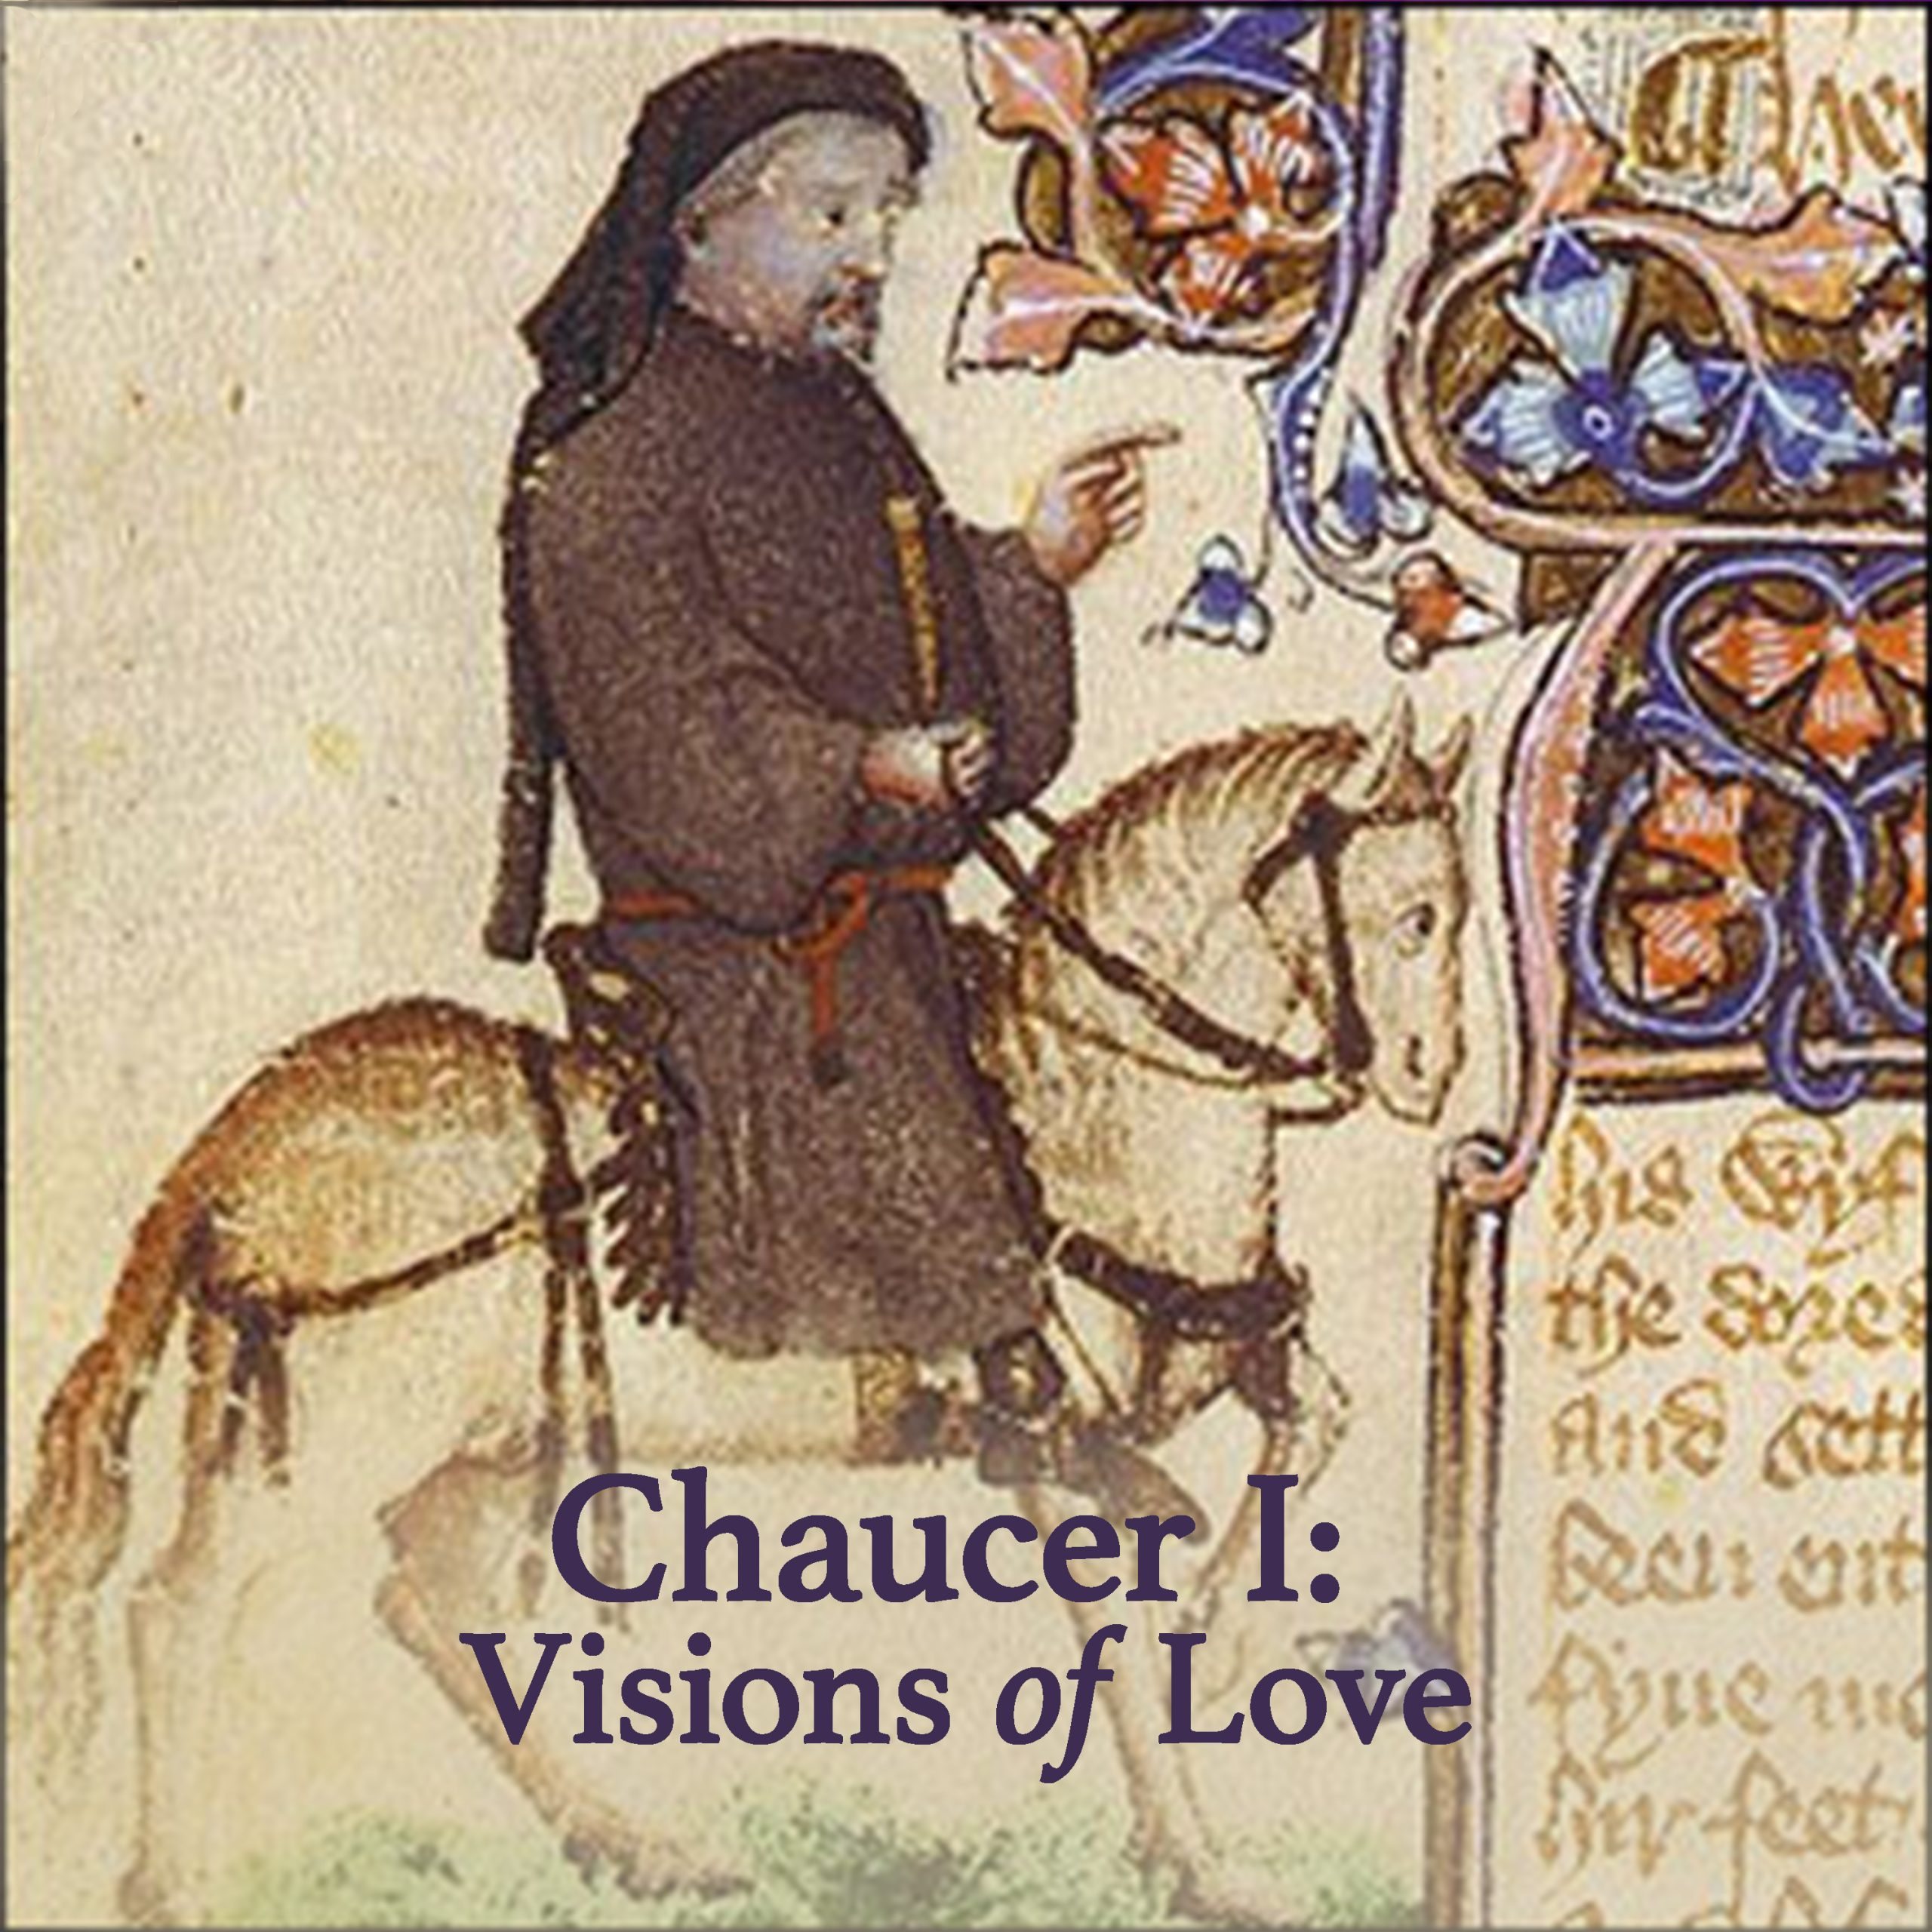 Chaucer I: Visions of Love